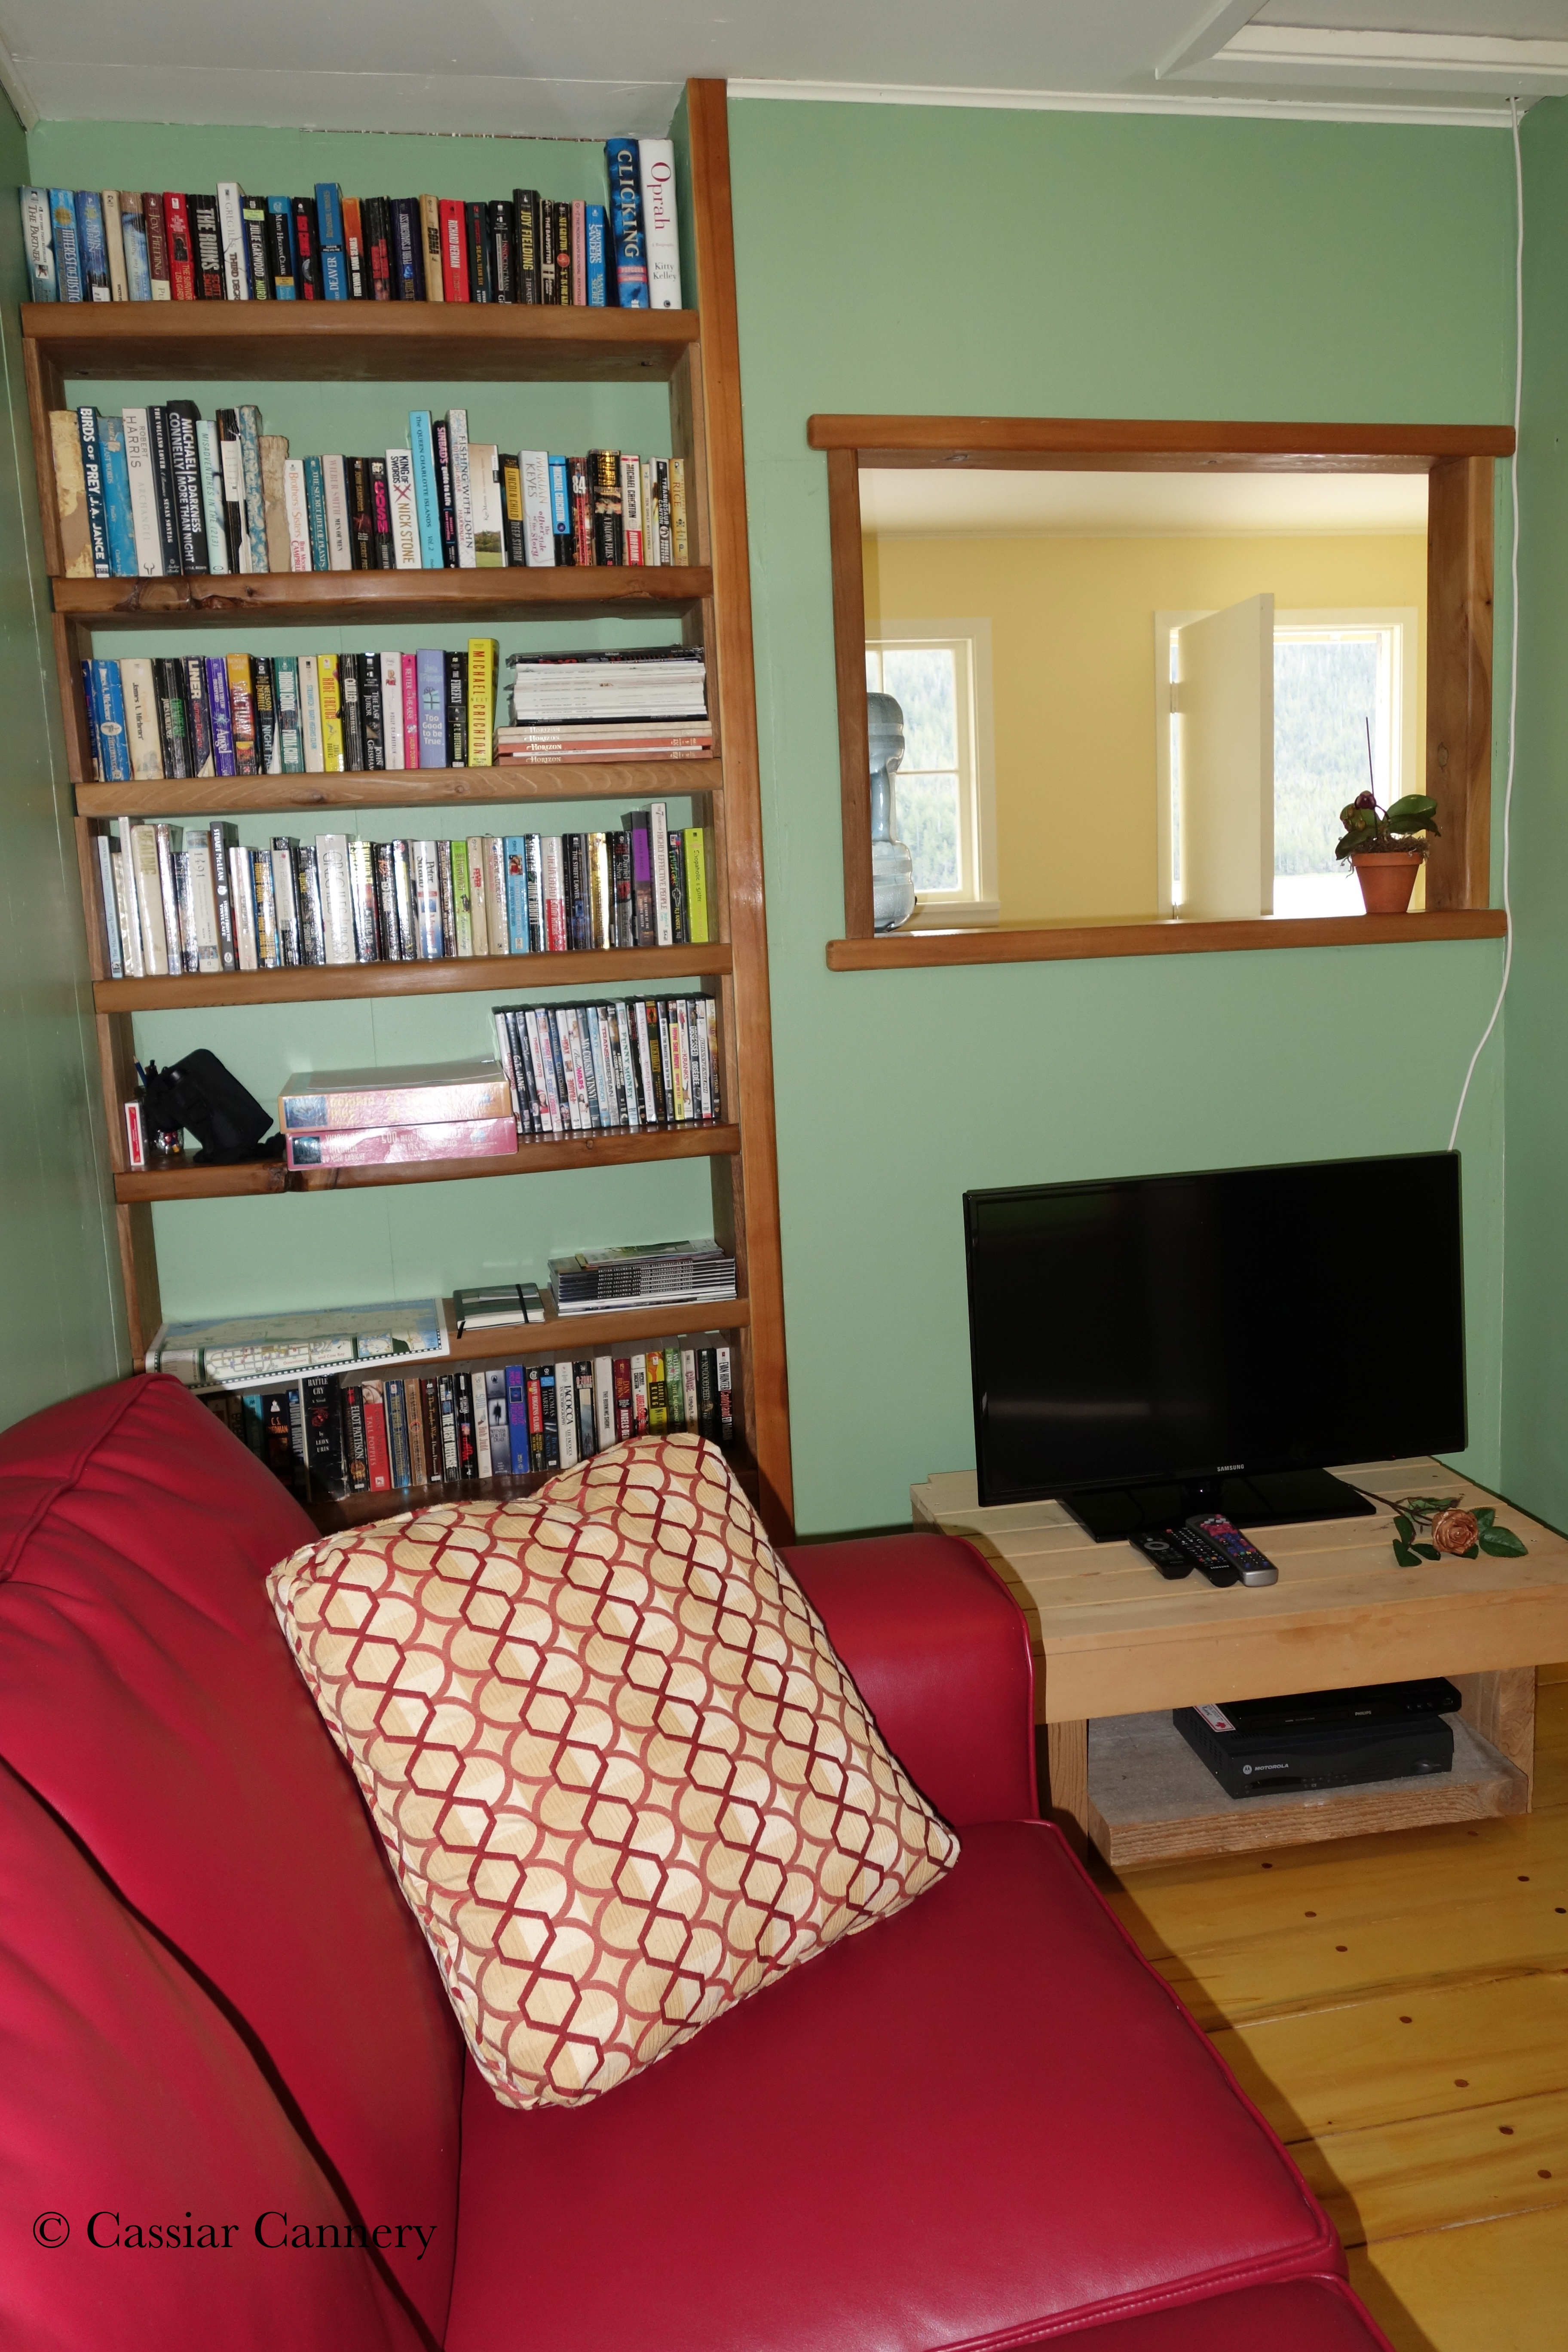 Cassiar Cannery - Steelhead House - comfortable sitting room with books, movies and puzzles.